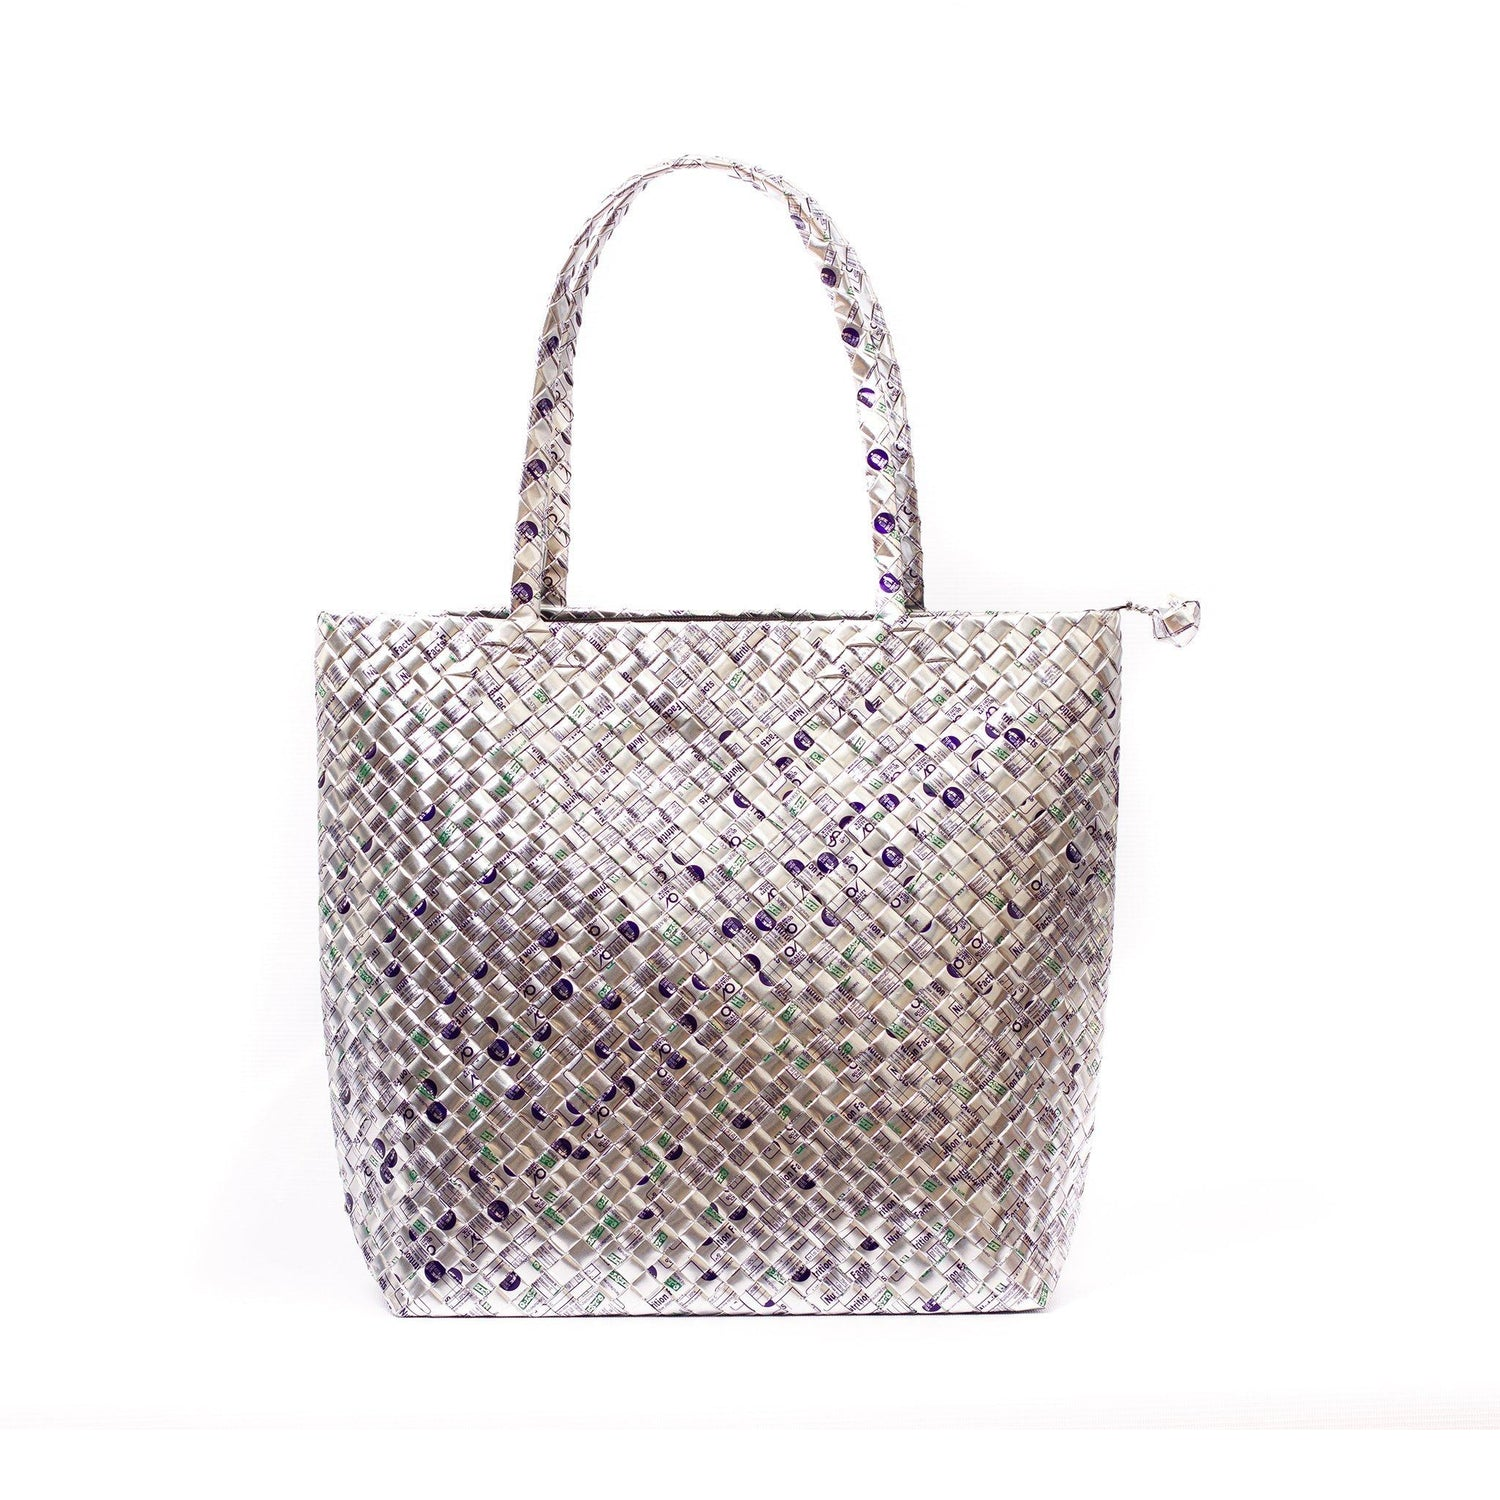 Mother Erth Limited Edition - Silver Woven Shoulder Bag Bags Mother Erth